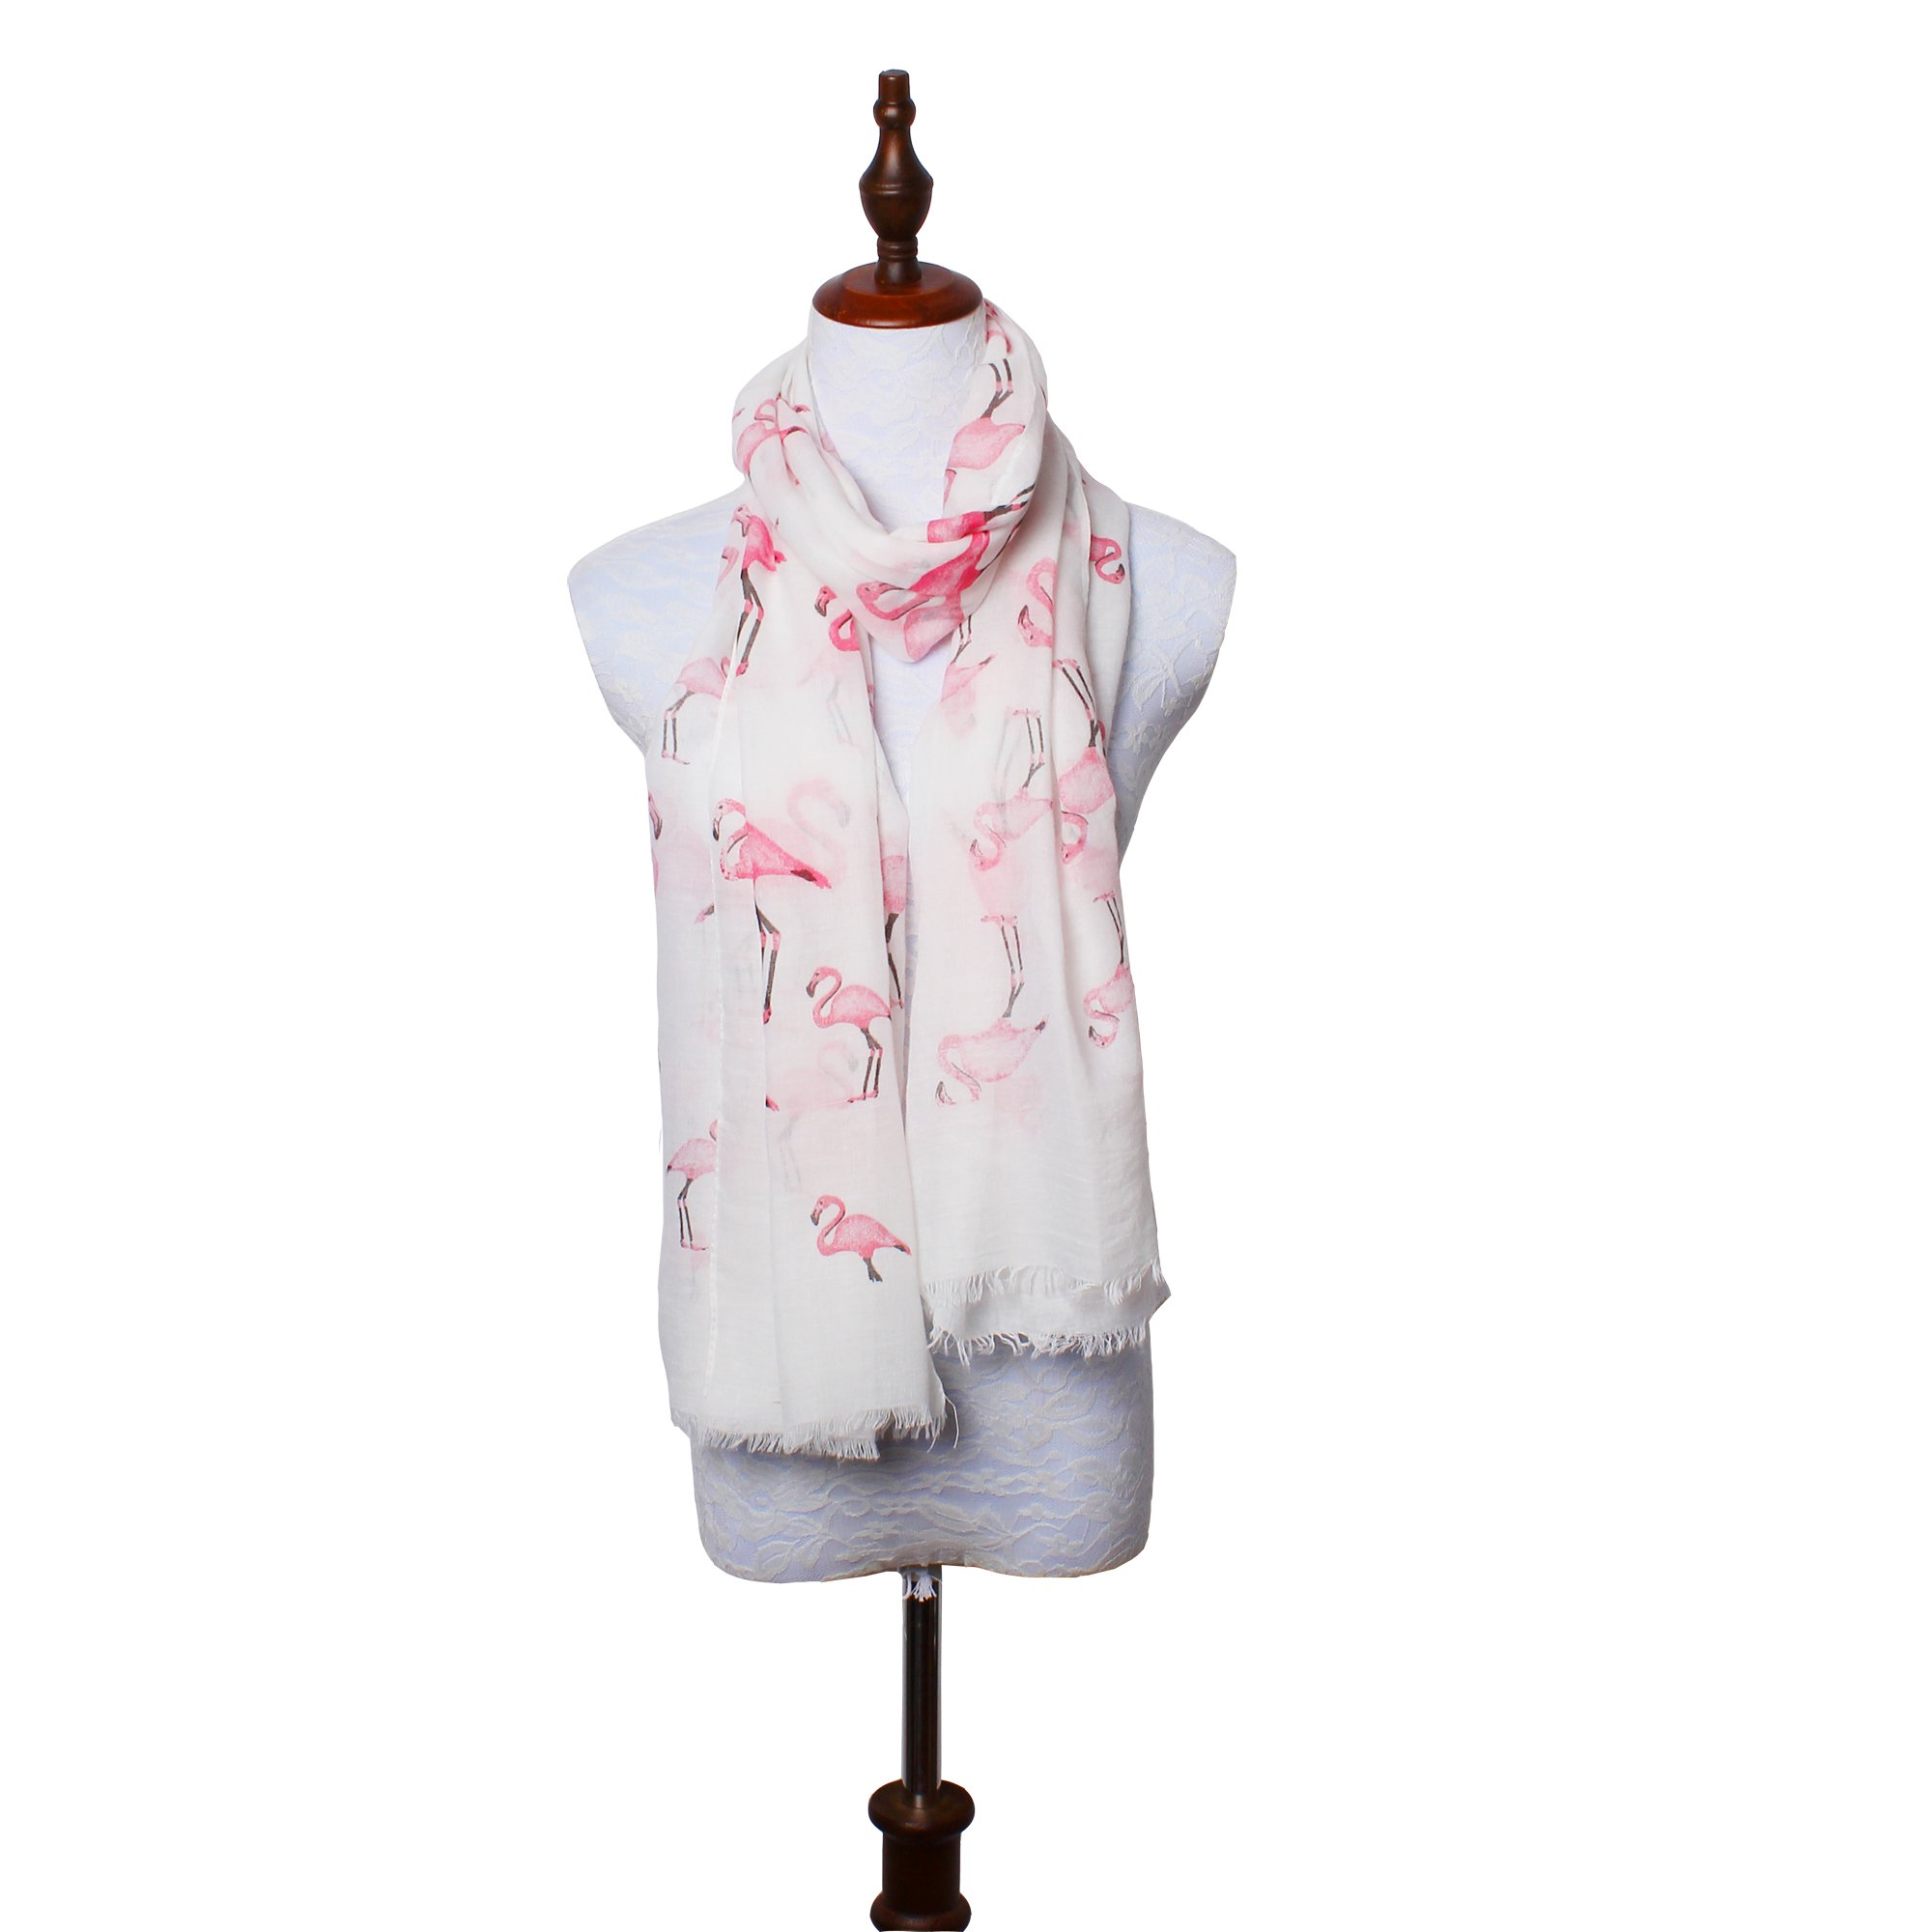 daguanjing 【Colorful Spring Inspired】 Women's Lightweight Fashion Scarf, Floral and Modern Print Sheer Shawl Wrap Flamingo